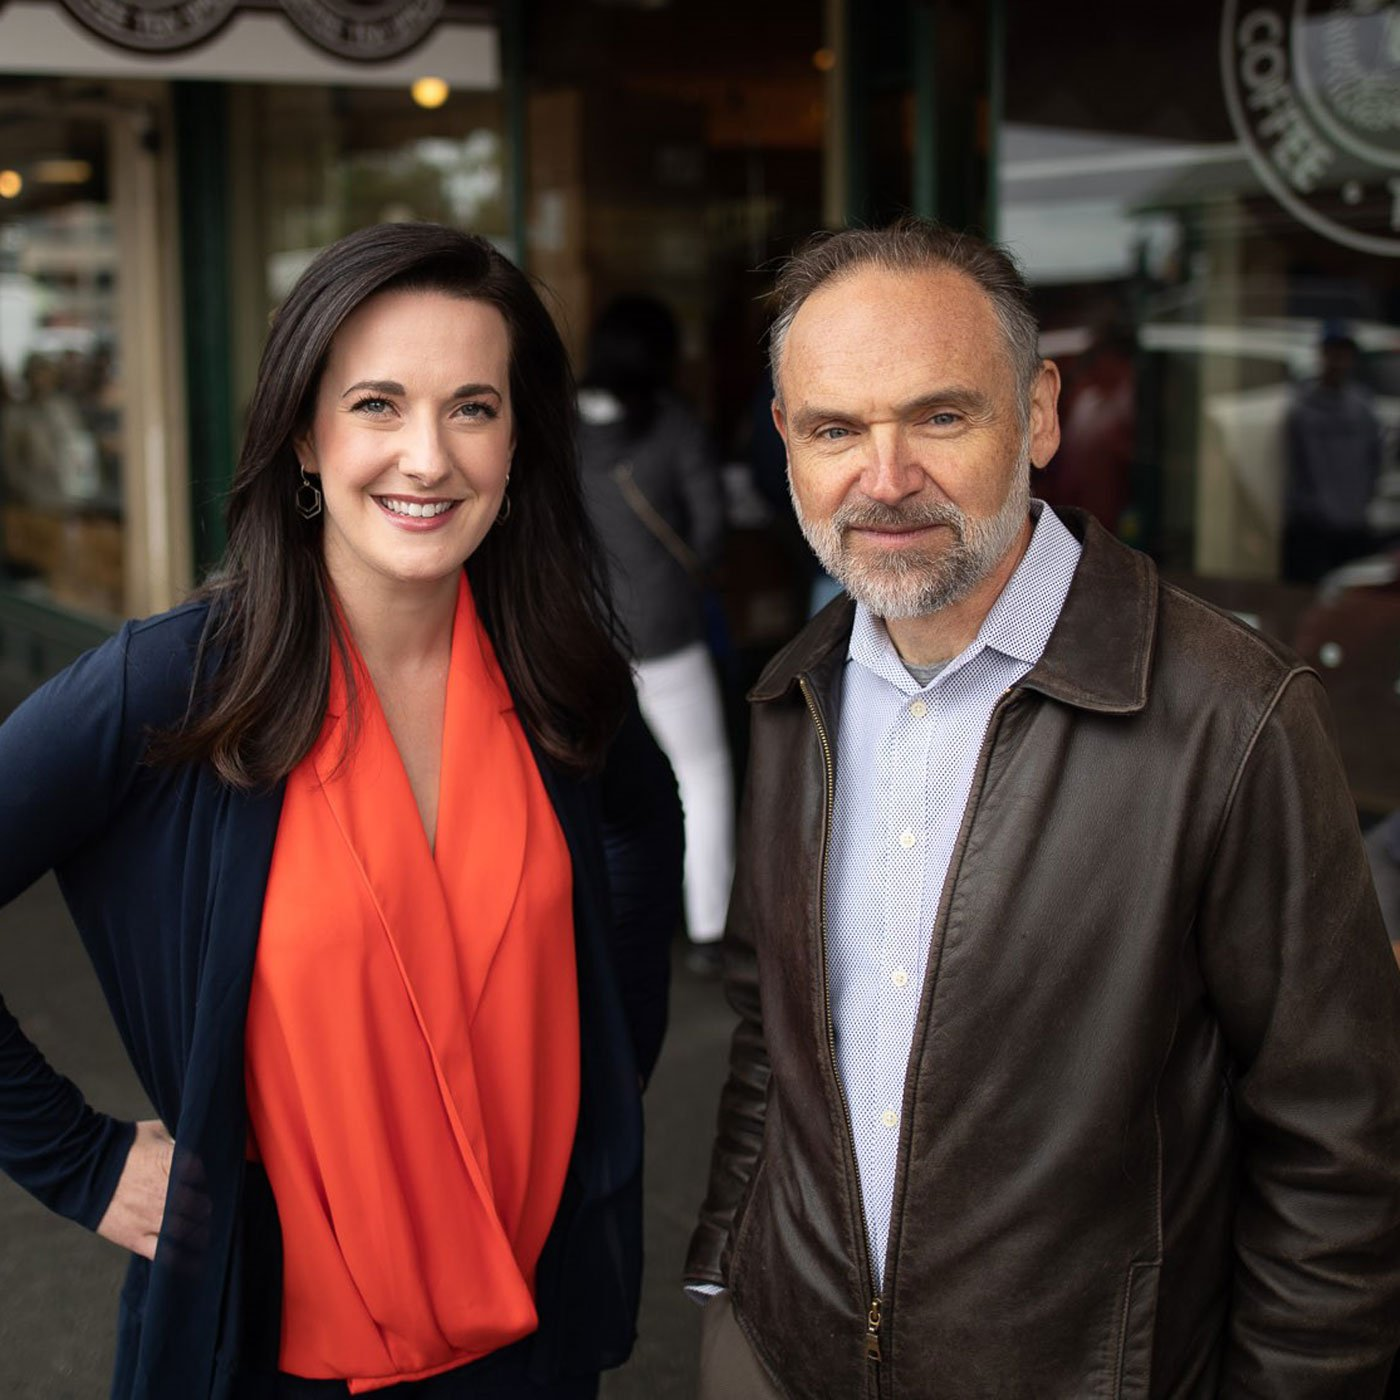 Seattle's Morning News with Dave Ross